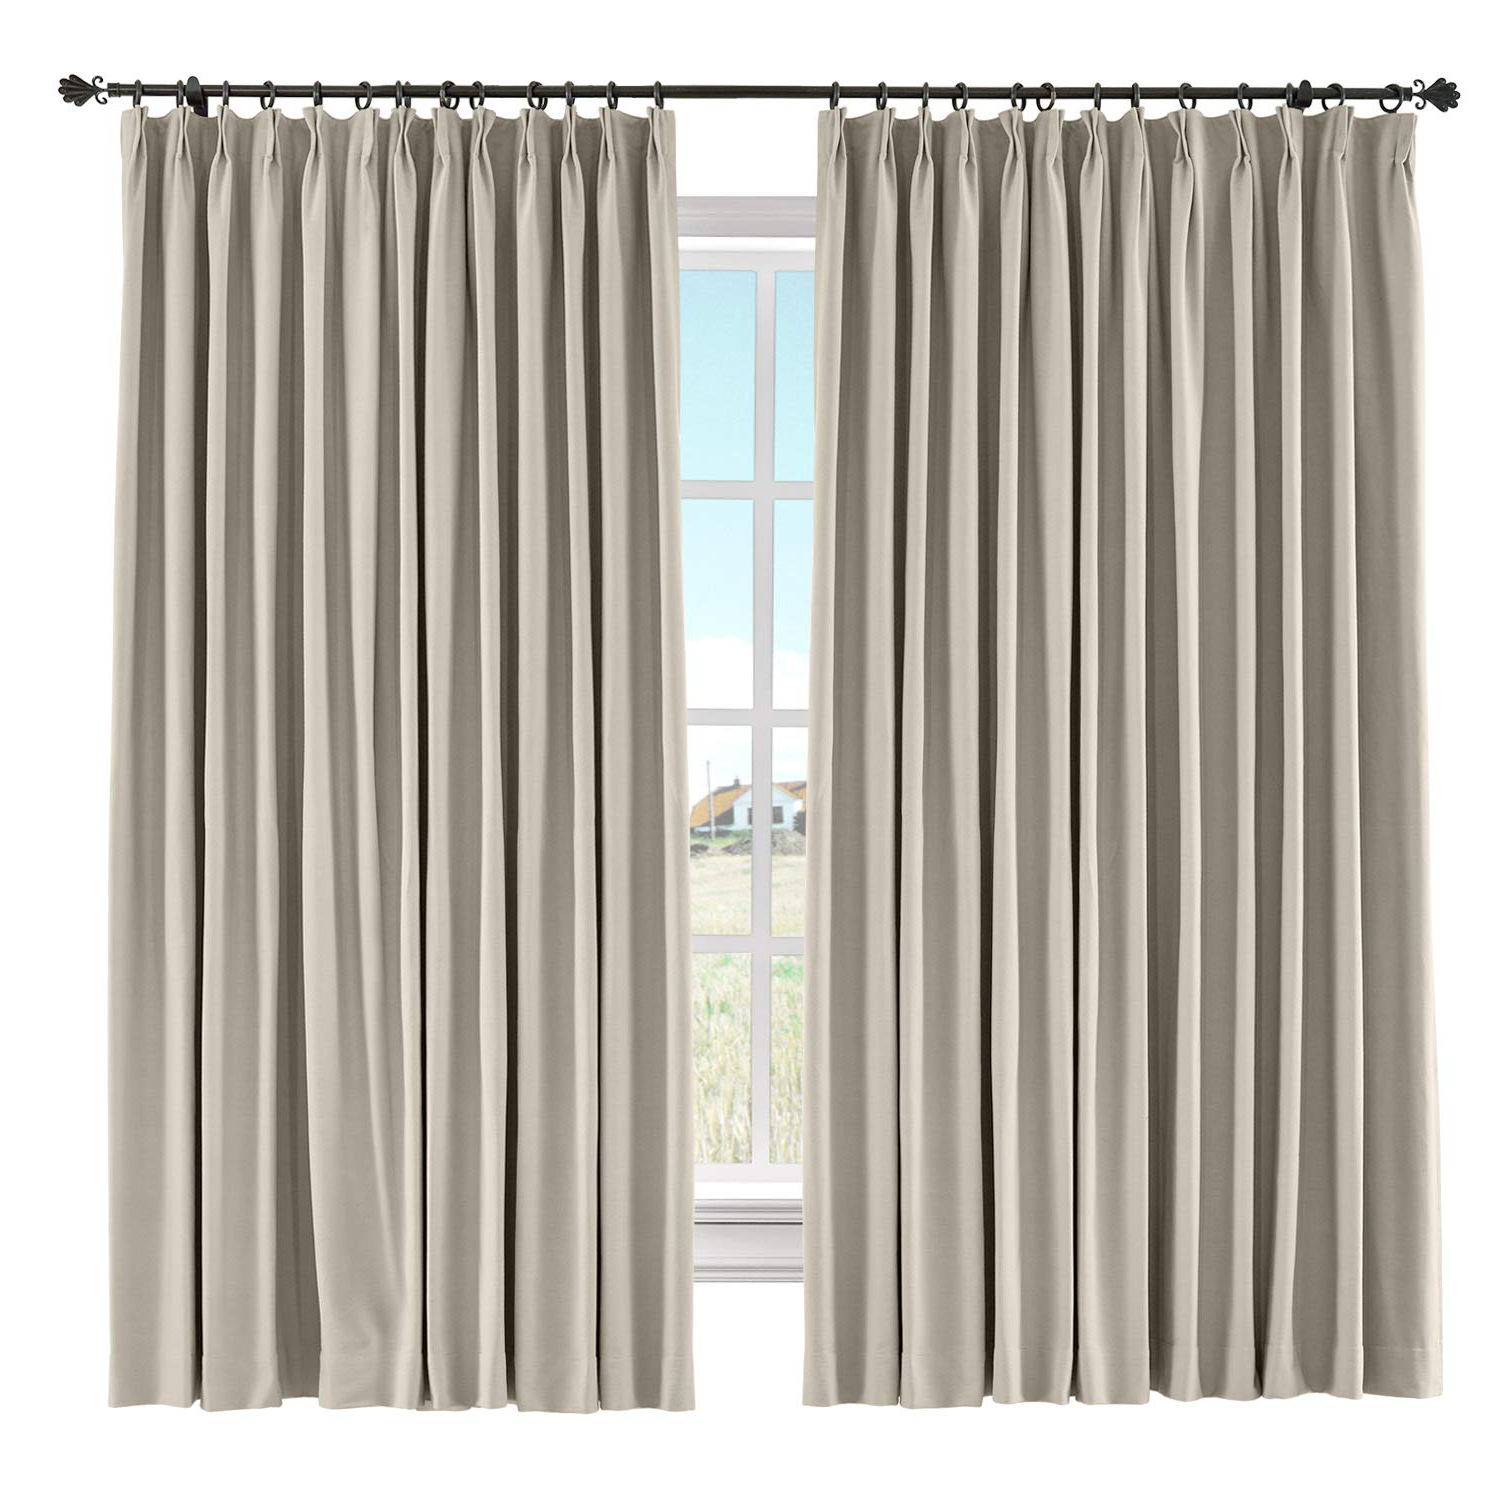 "[%Chadmade Drape Room Darkening Curtain Linen Cotton Drapery 85% Blackout  Solid Pinch Pleated Curtain Bedroom Living Room Family Room, 72"" W X 84"" L Inside Latest Solid Cotton Pleated Curtains